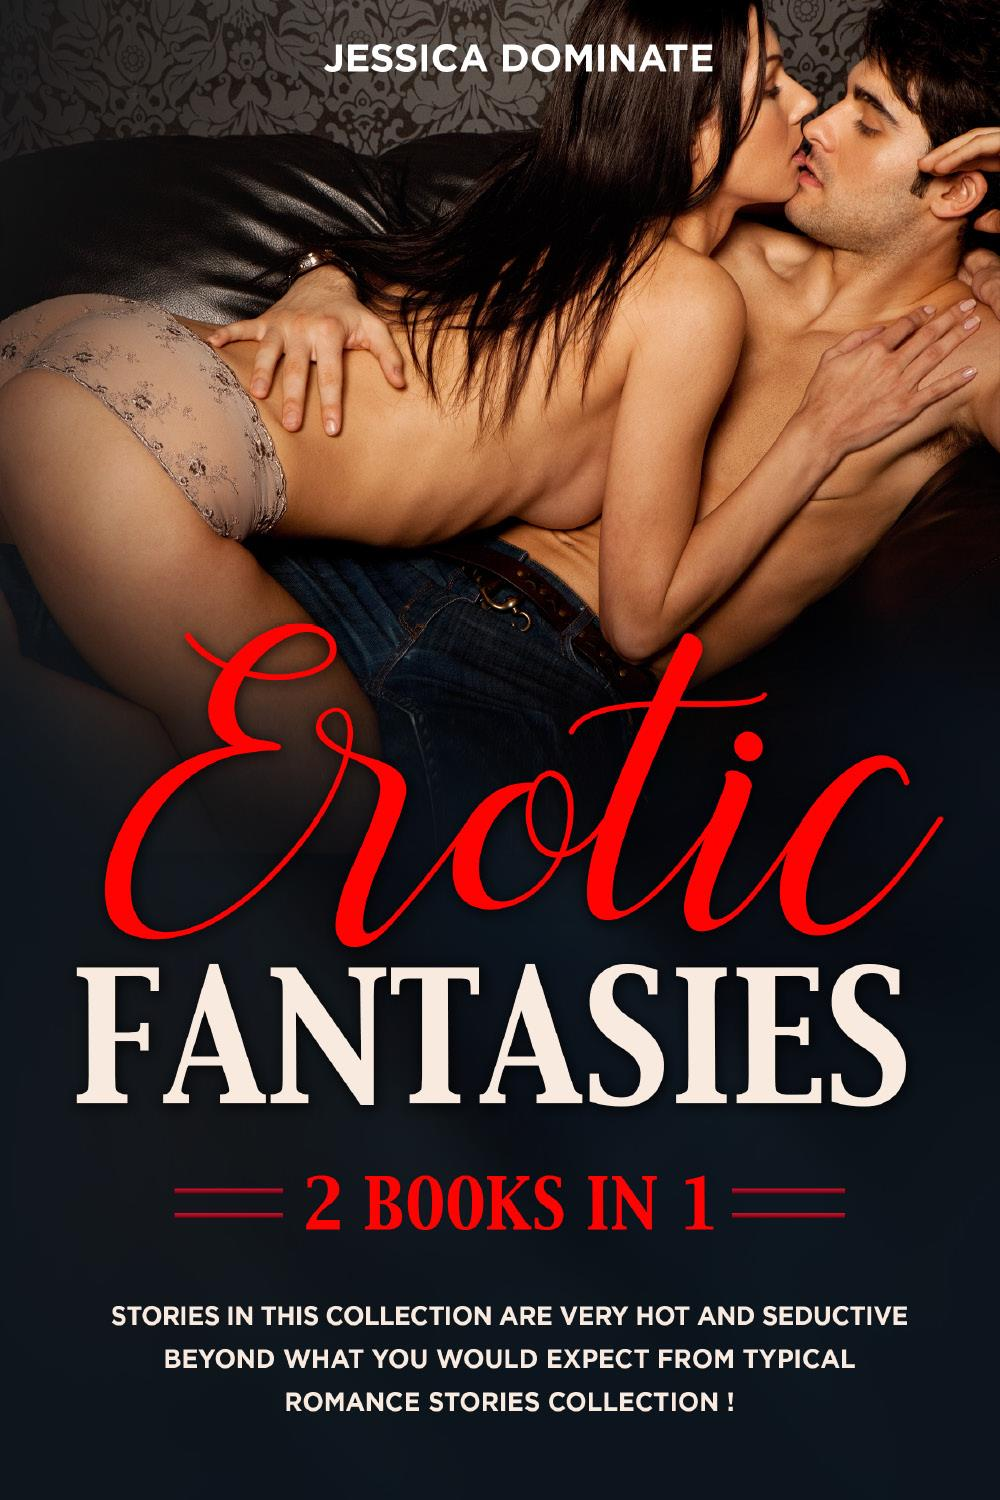 Erotic Fantasies (2 Books in 1). Stories in this Collection are Very Hot and Seductive beyond what you would expect from typical romance stories collection !